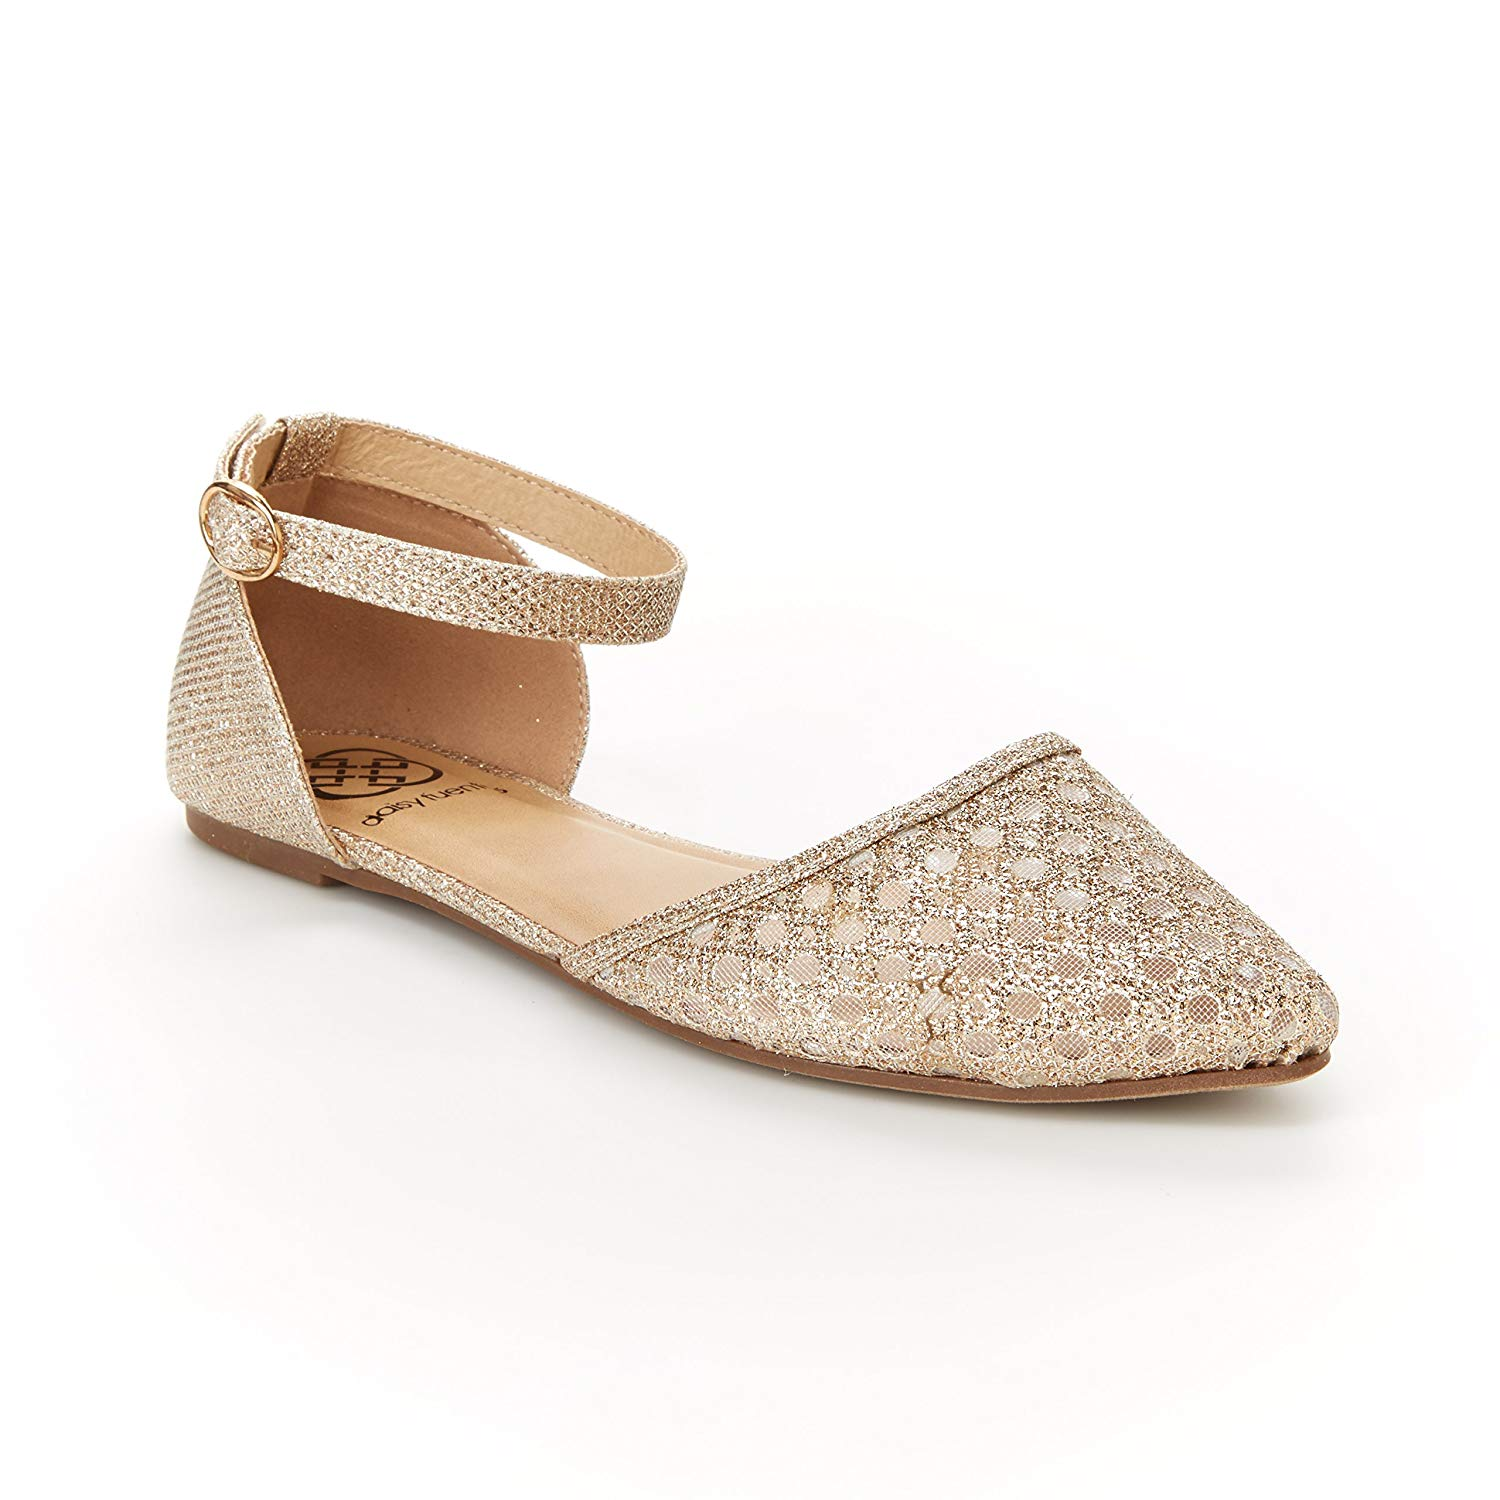 3f50657d1e0 Get Quotations · Daisy Fuentes Vegan Layla Flat – Metallic Mesh Upper with  Ankle Strap